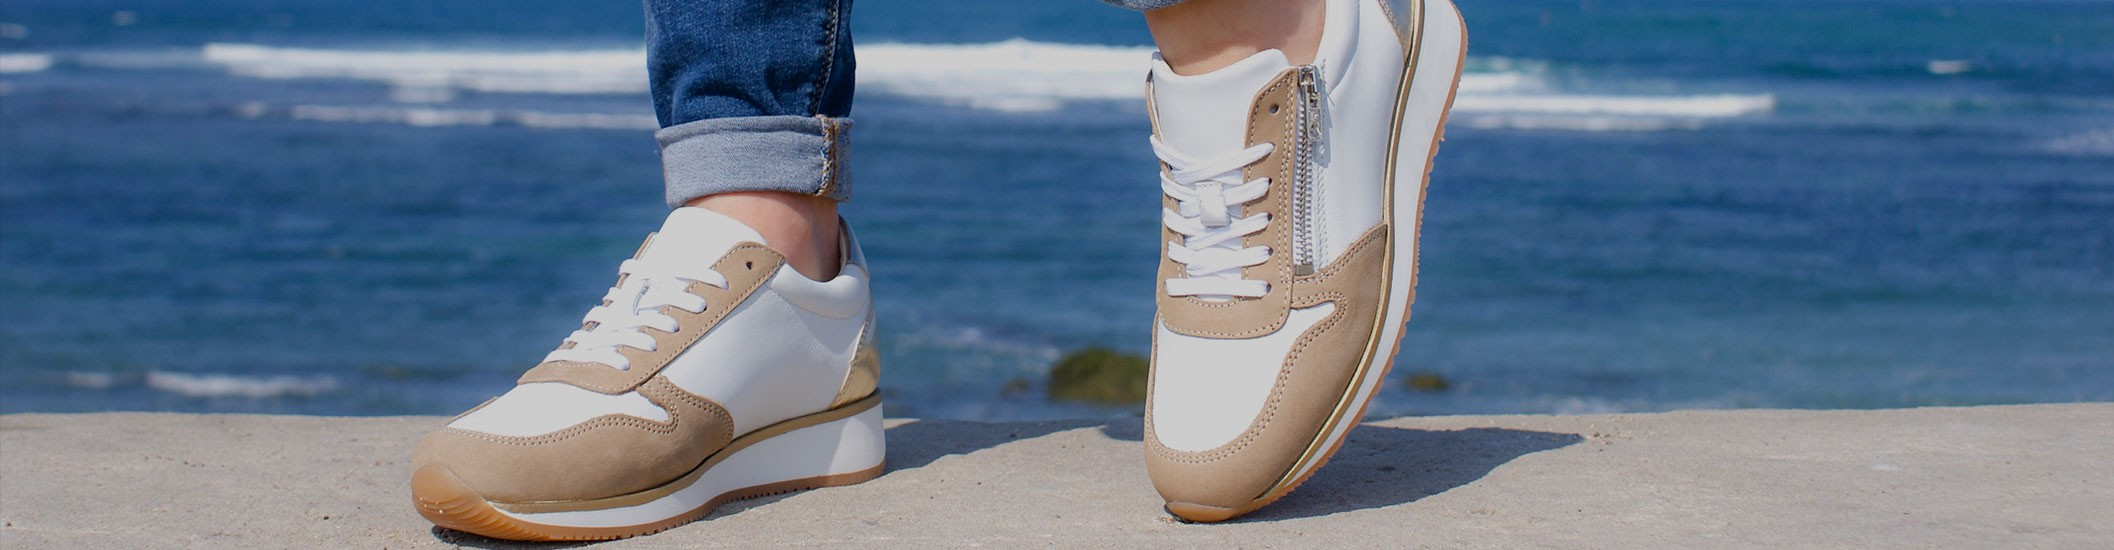 Comfortable sneakers for everyday